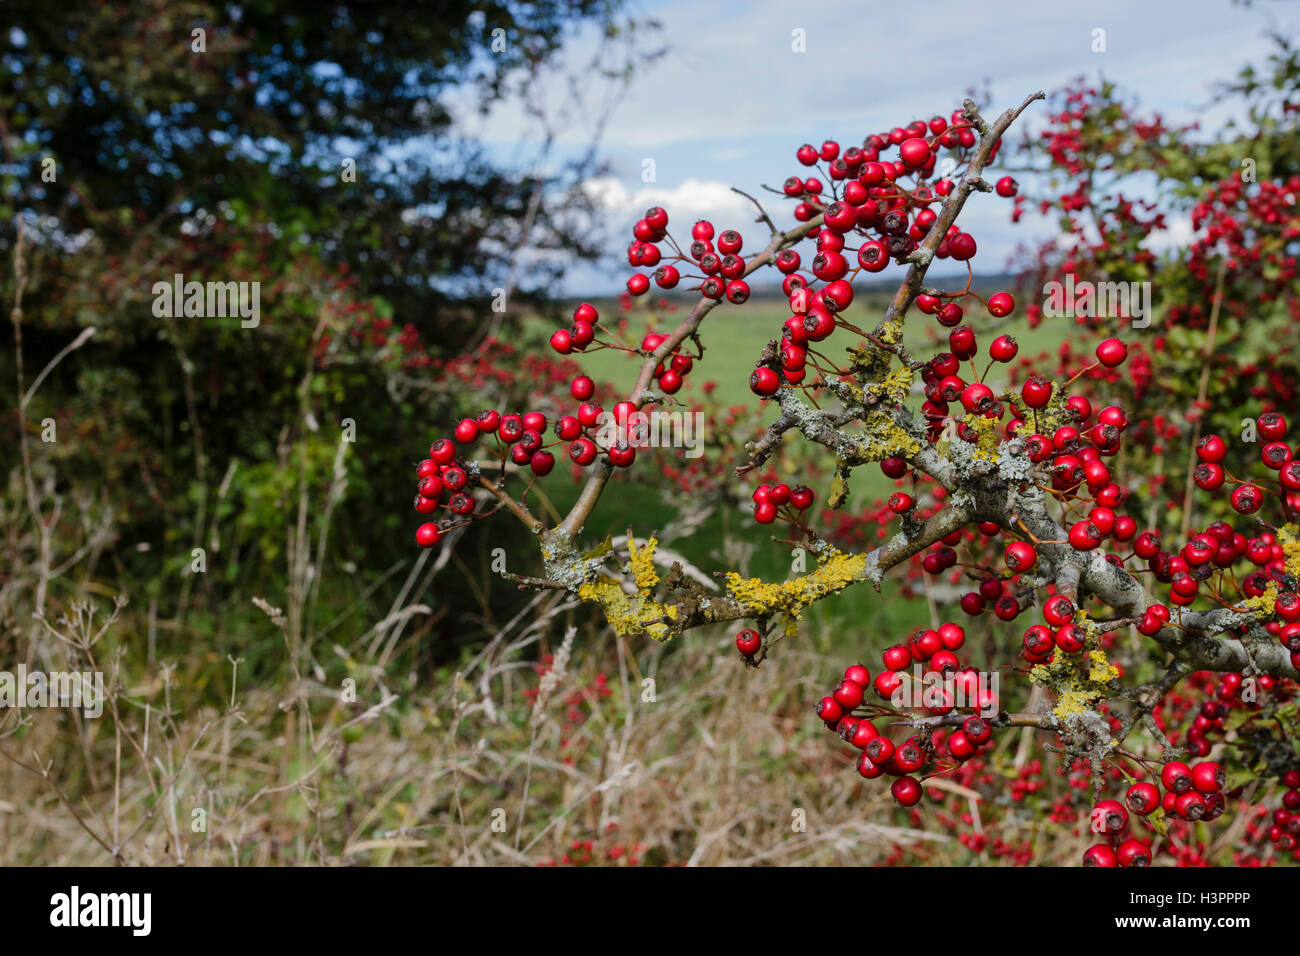 Hawthorn tree with berries and lichen covered branches, East Sussex countryside, England, UK - Stock Image